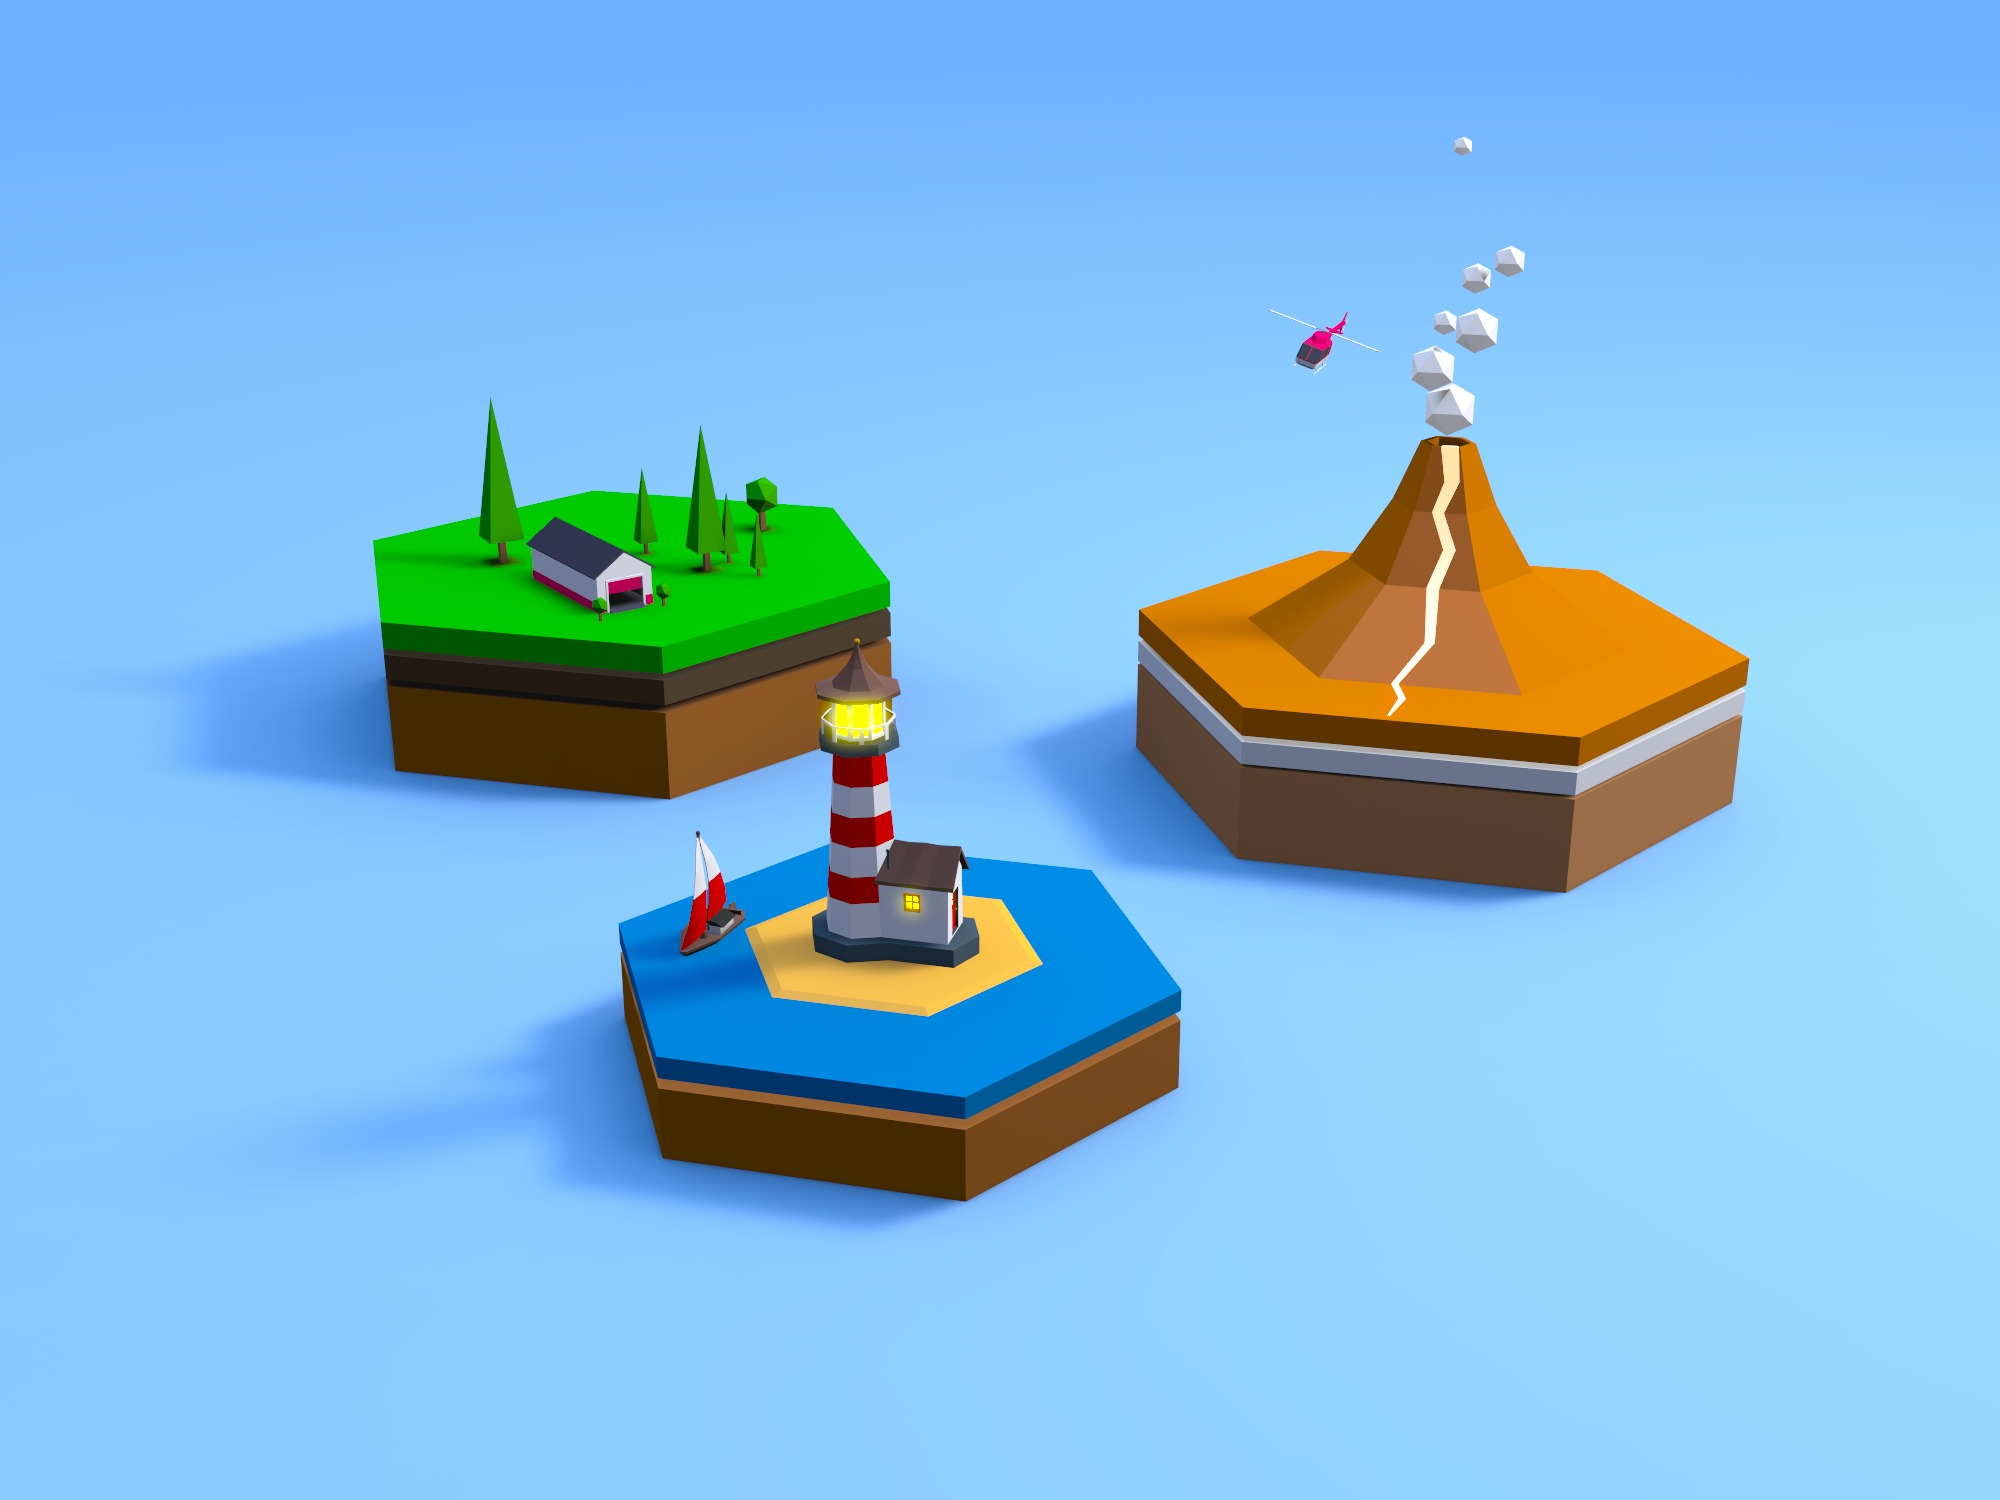 Mini Worlds - 3D design by Milan Gladiš Jun 7, 2018